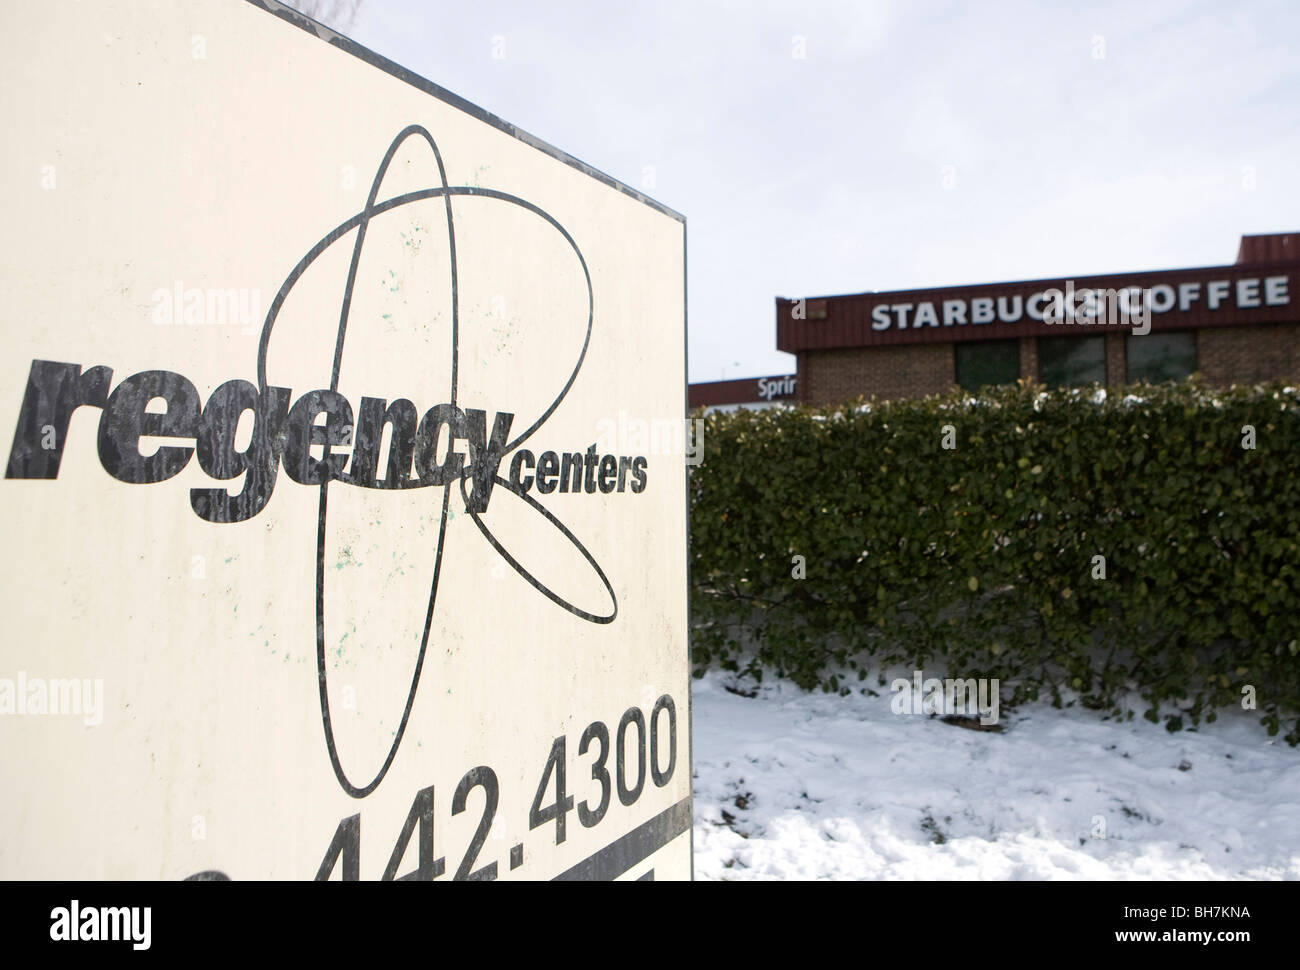 A Regency Centers shopping center in suburban Maryland.  - Stock Image